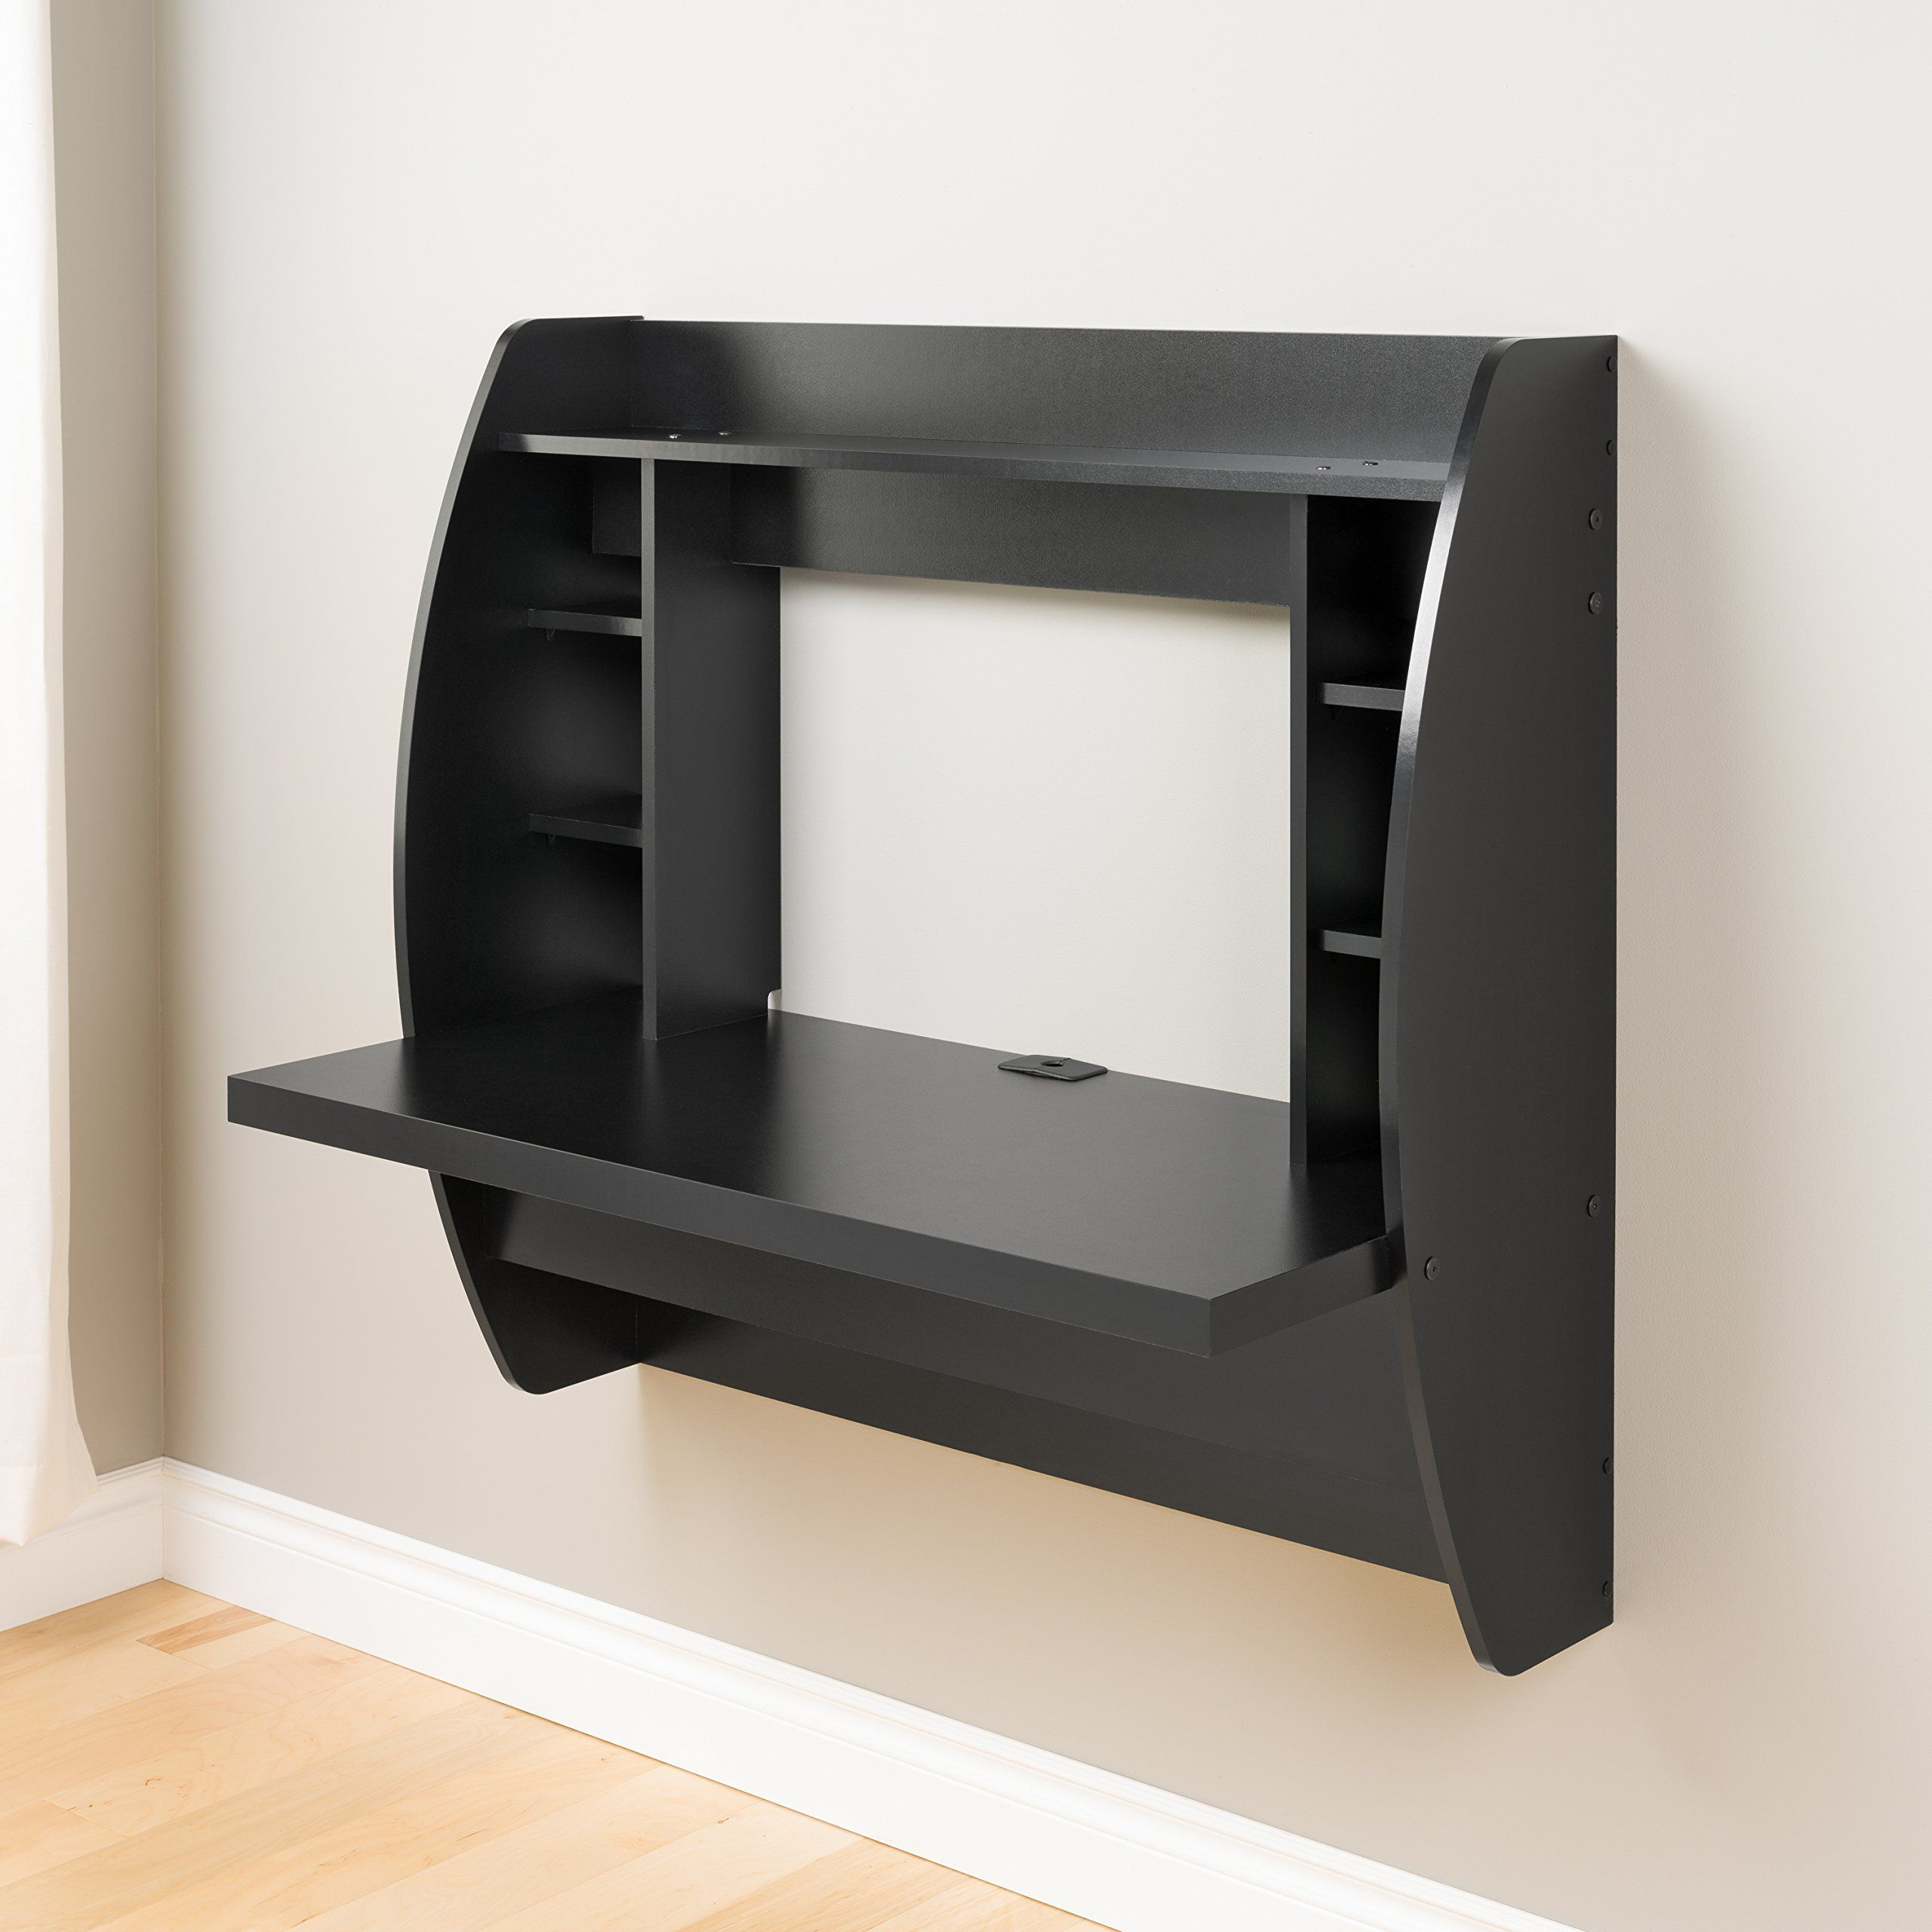 Prepac Wall Mounted Floating Desk With Storage In Black Floating Desk Black Floating Desk Floating Wall Desk